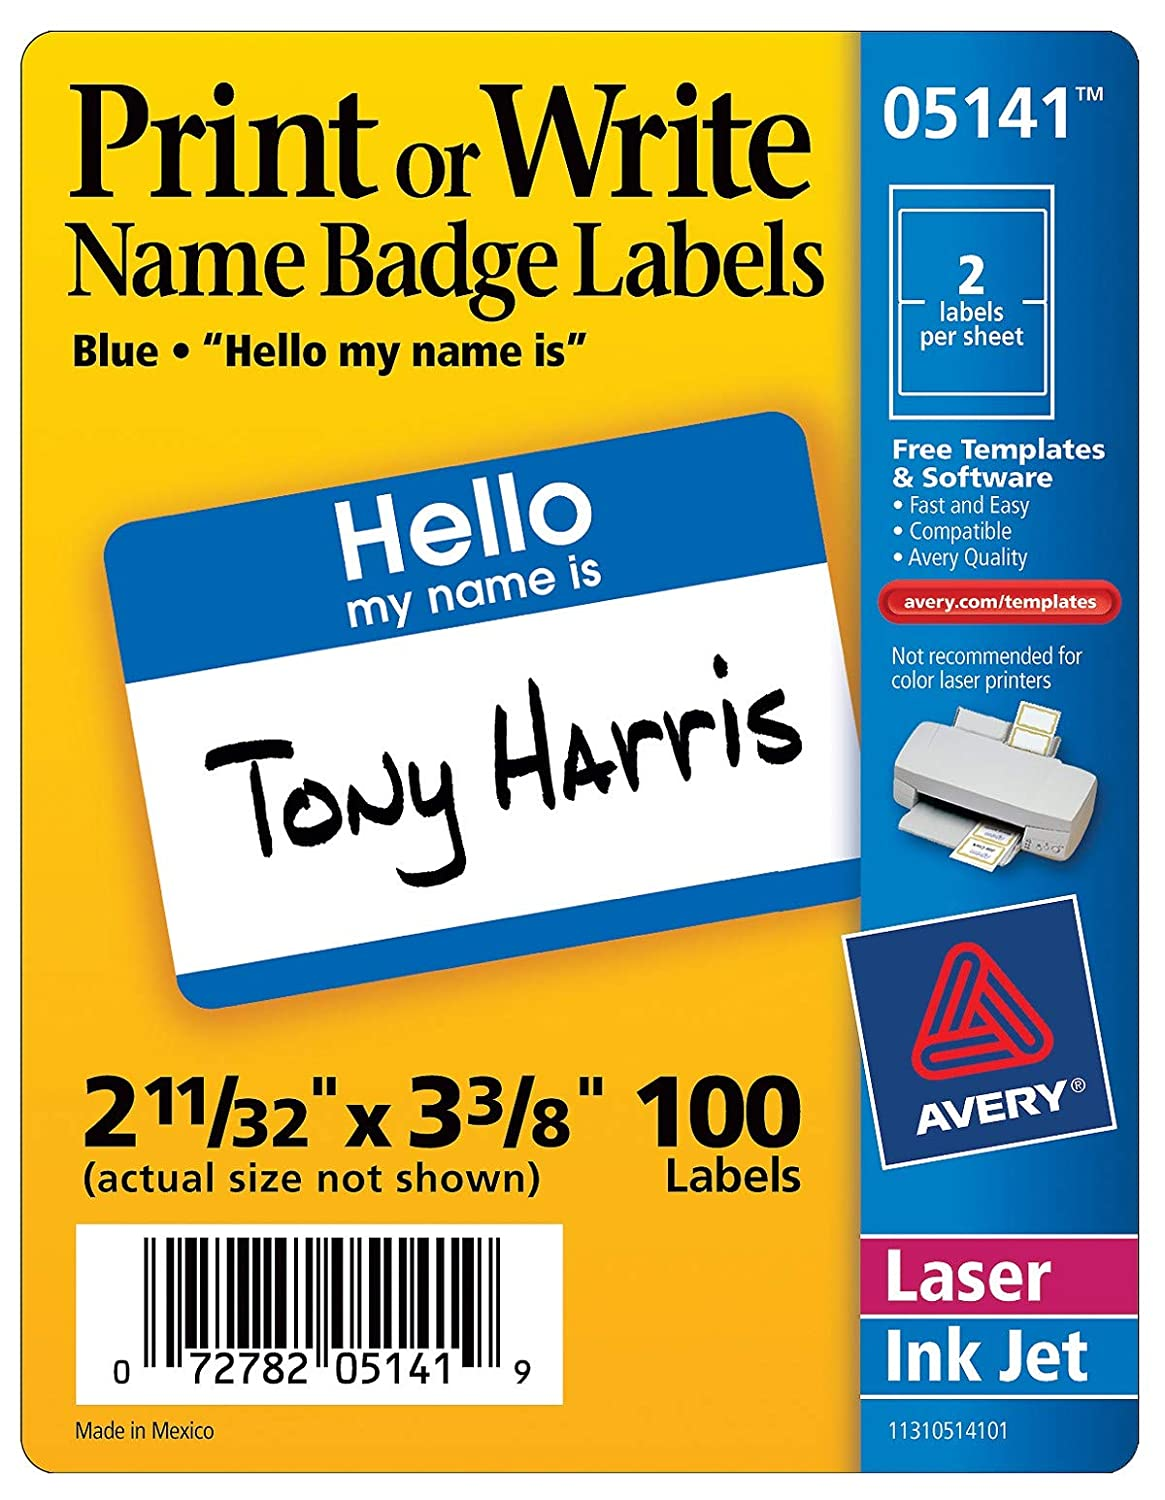 Avery 05141 Name Badge Labels 100 Count AVE5141